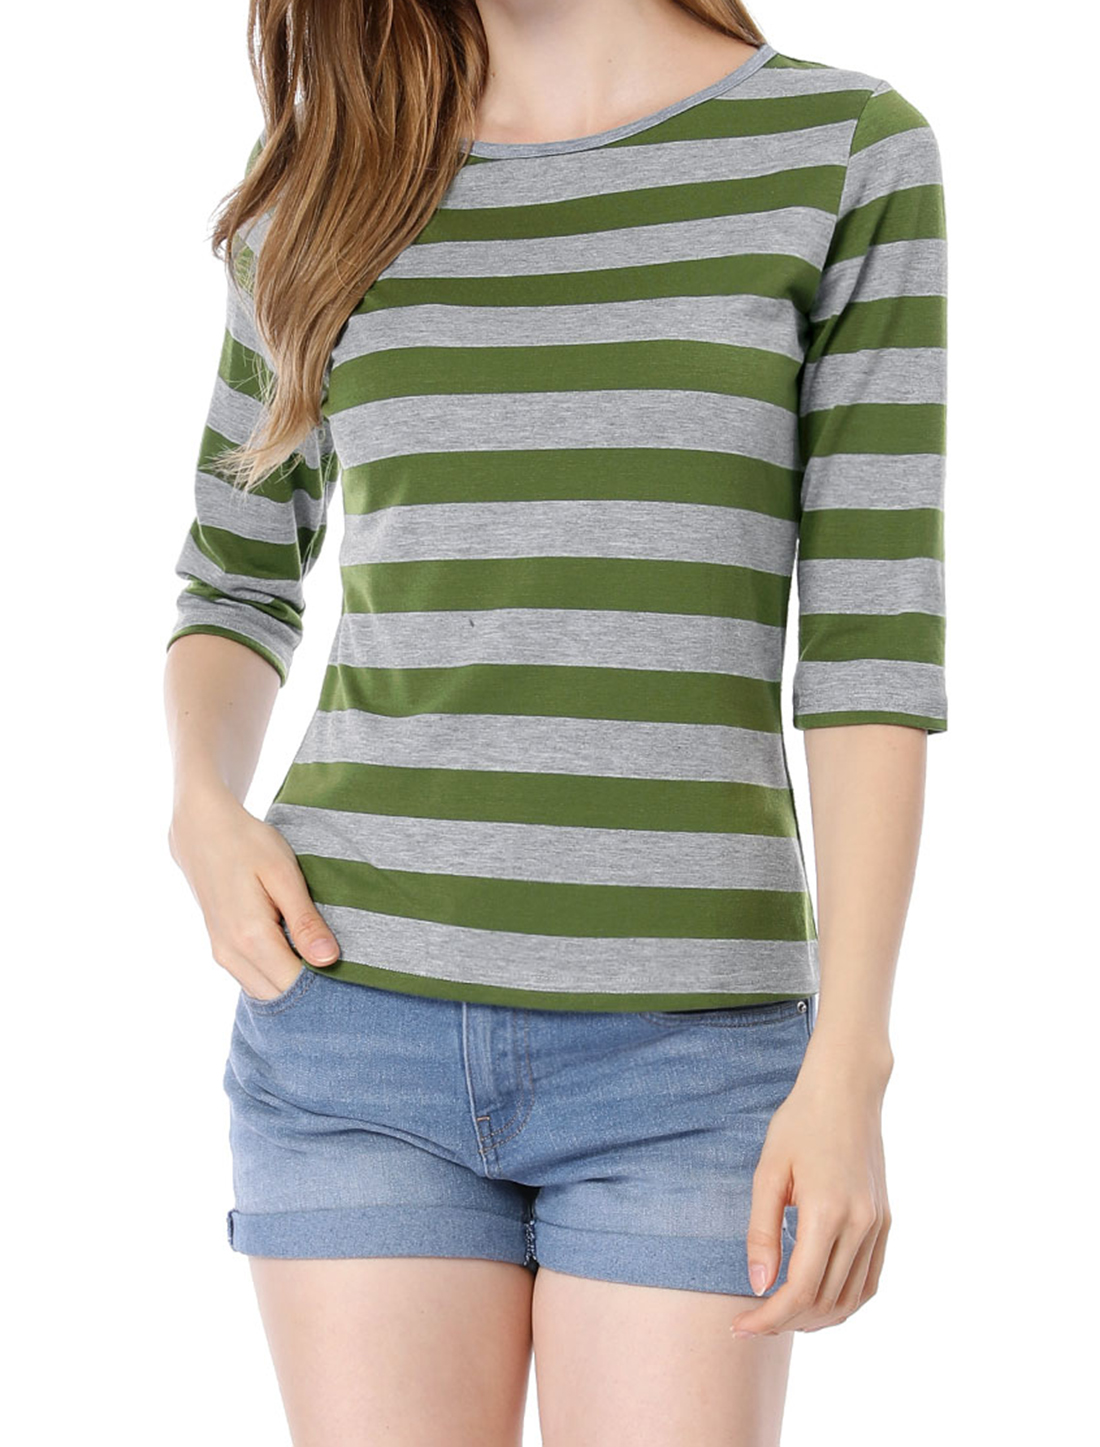 Women 1/2 Sleeves Contrast Color Stripes T-shirt Green Gray M